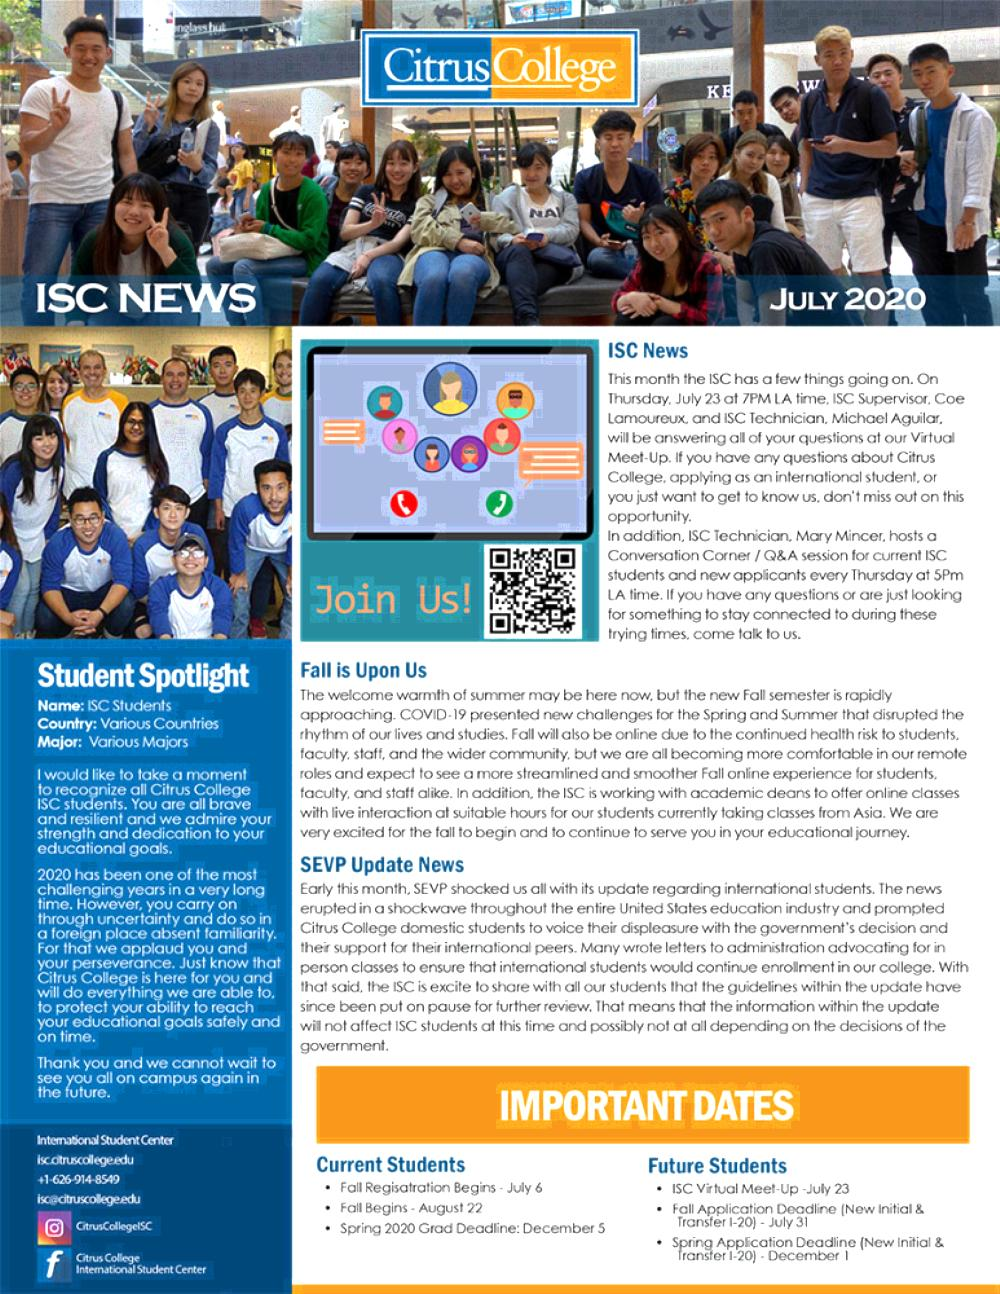 ISC News July 2020